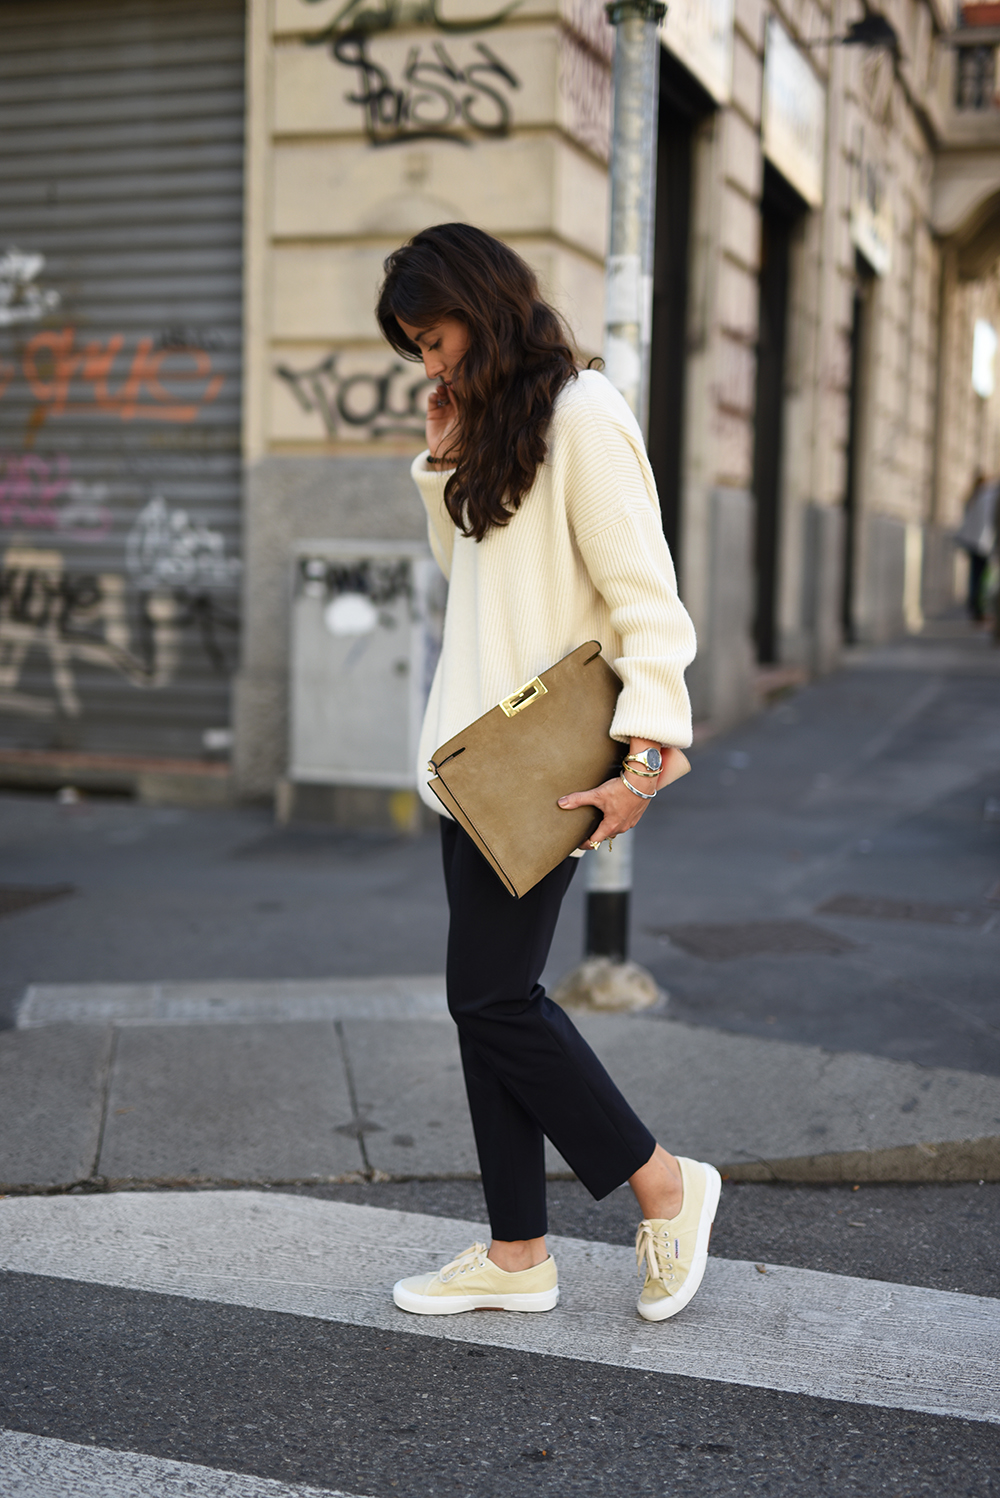 This pale cream knit looks super cute with simple black trousers and crepes. Via Hug-You.com. Knit: Tomas Maier, Trousers: Tibi.